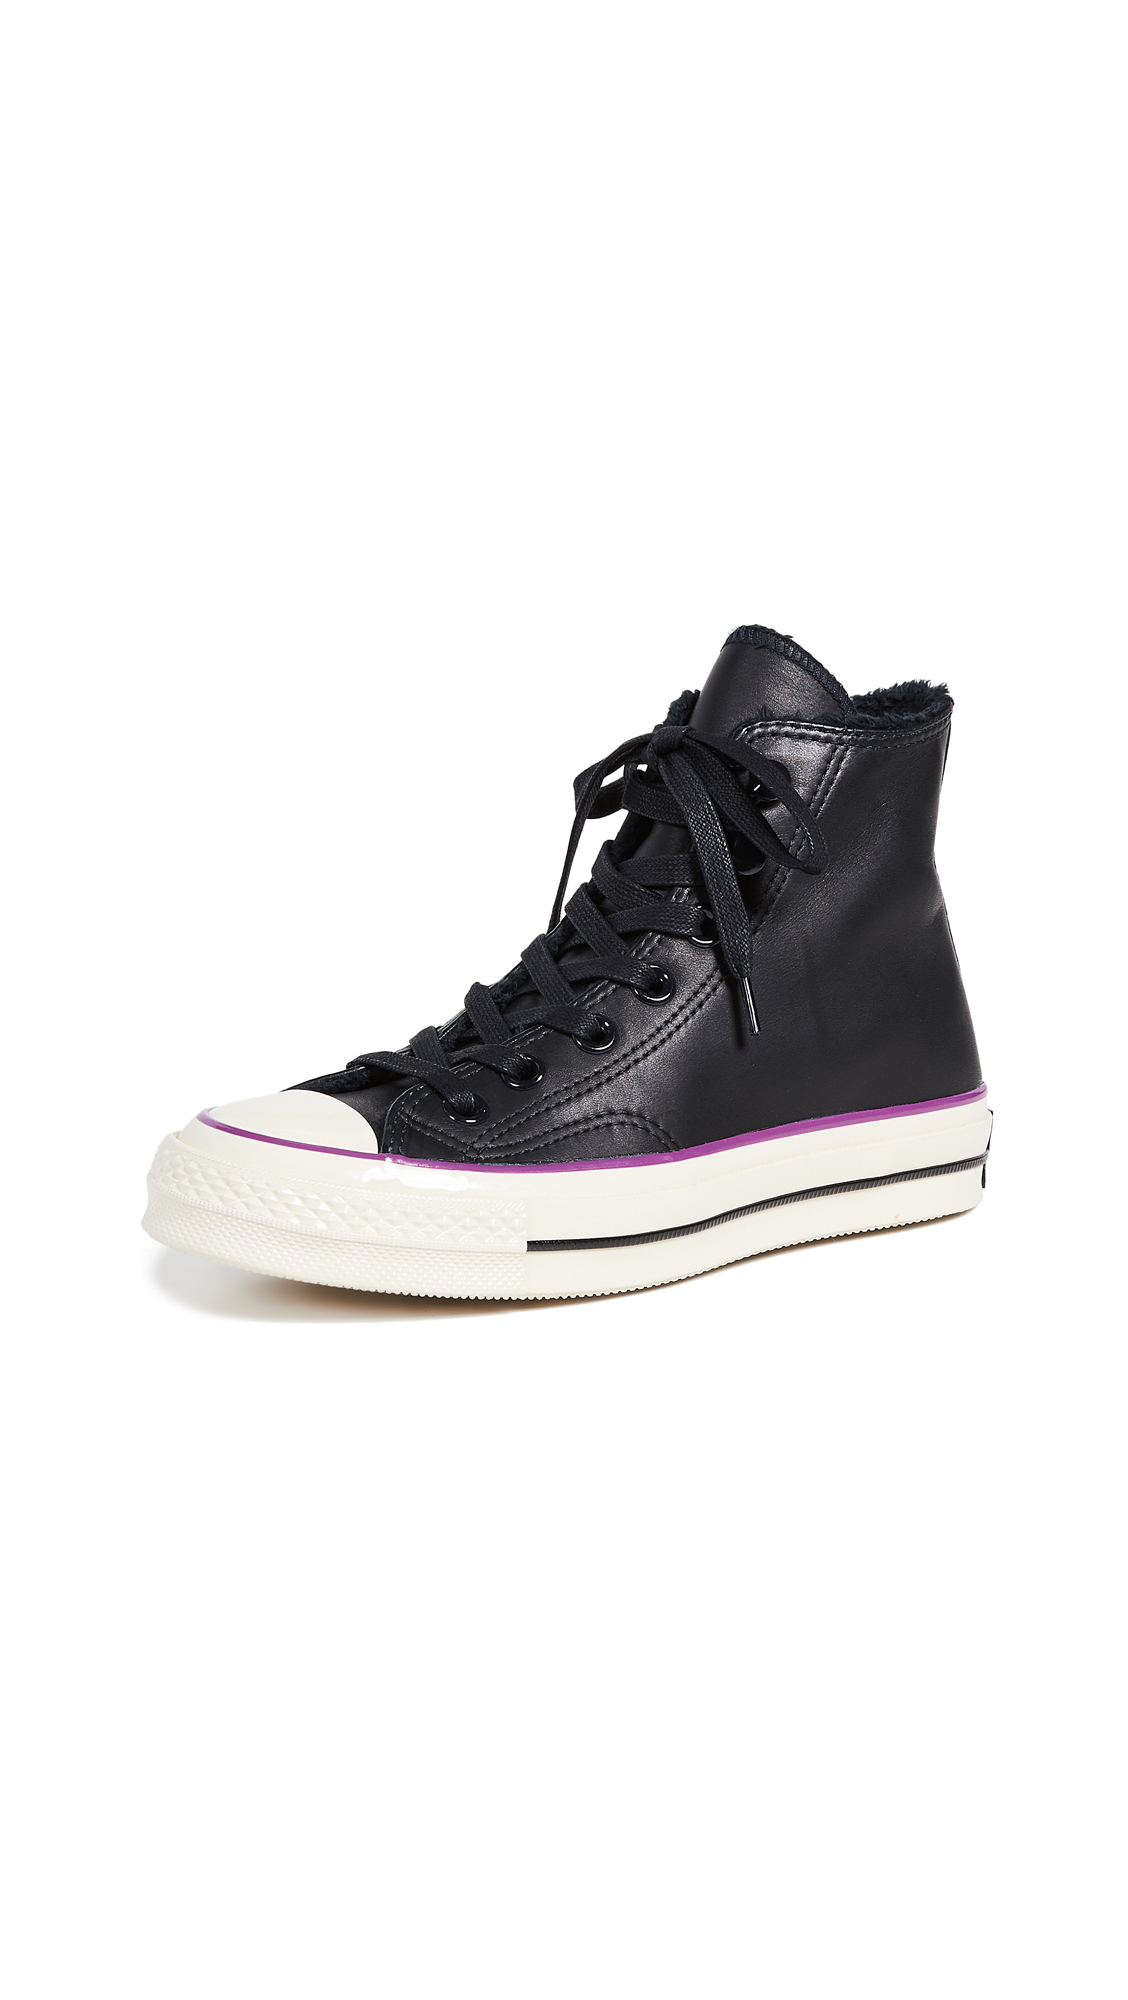 Chuck Taylor All Star Ct 70 Street Warmer High Top Sneaker in Black